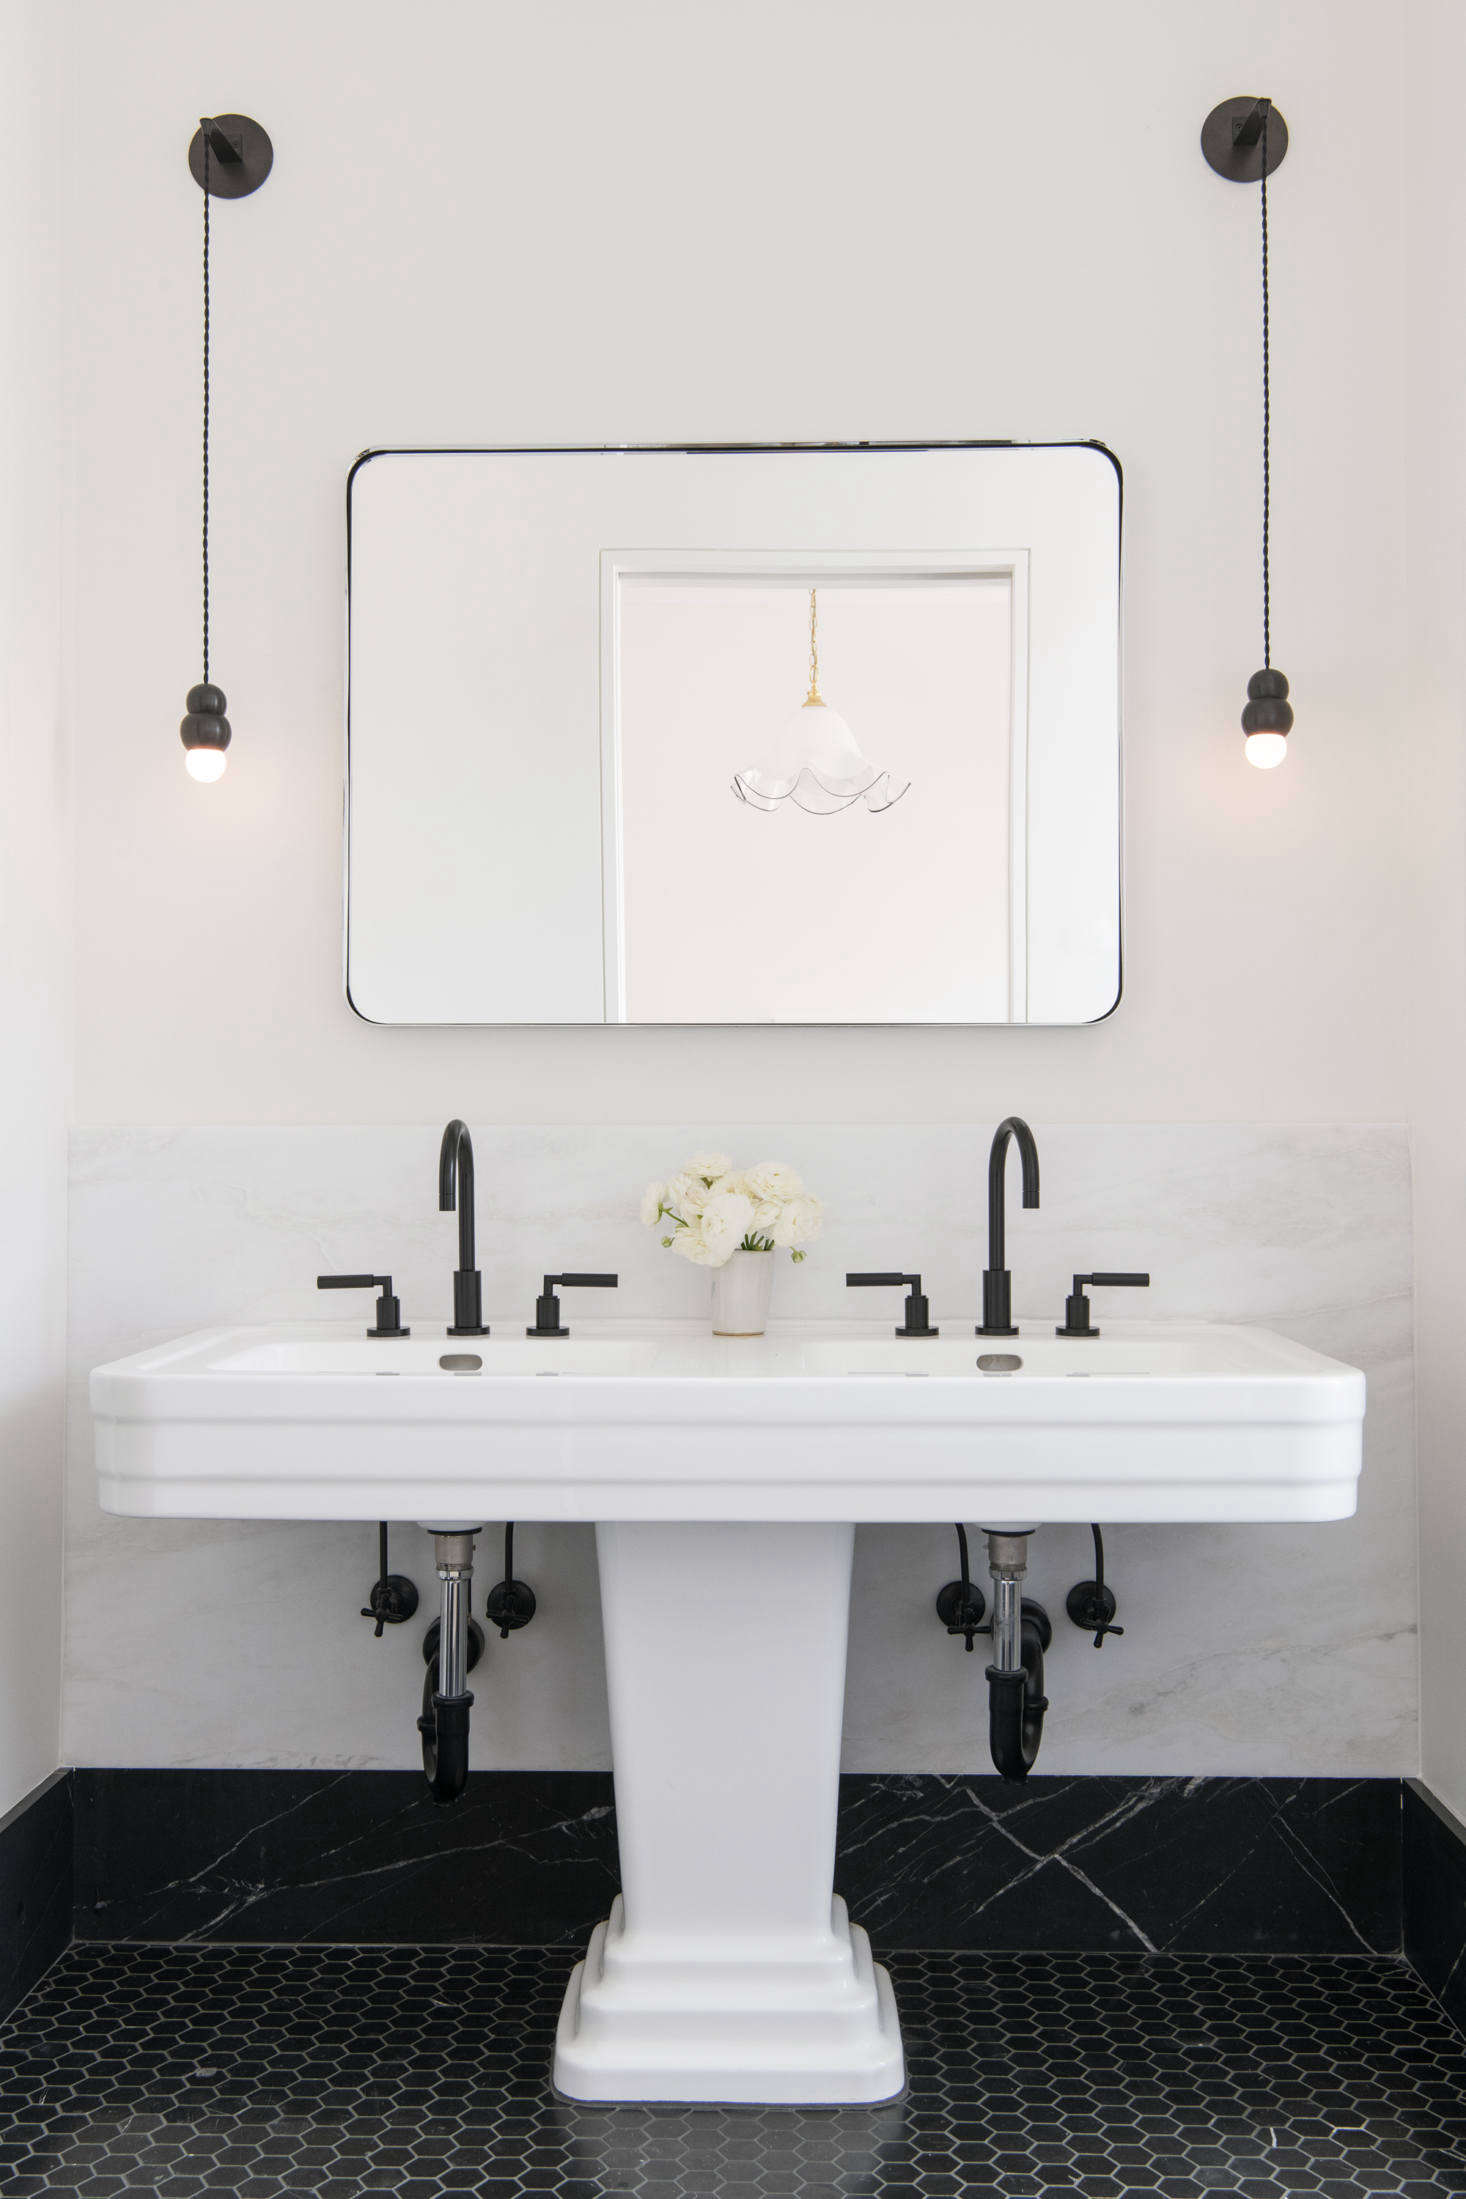 A vintage Art Deco double sink, upgraded with modern fixtures, is the pièce de résistance in the room.